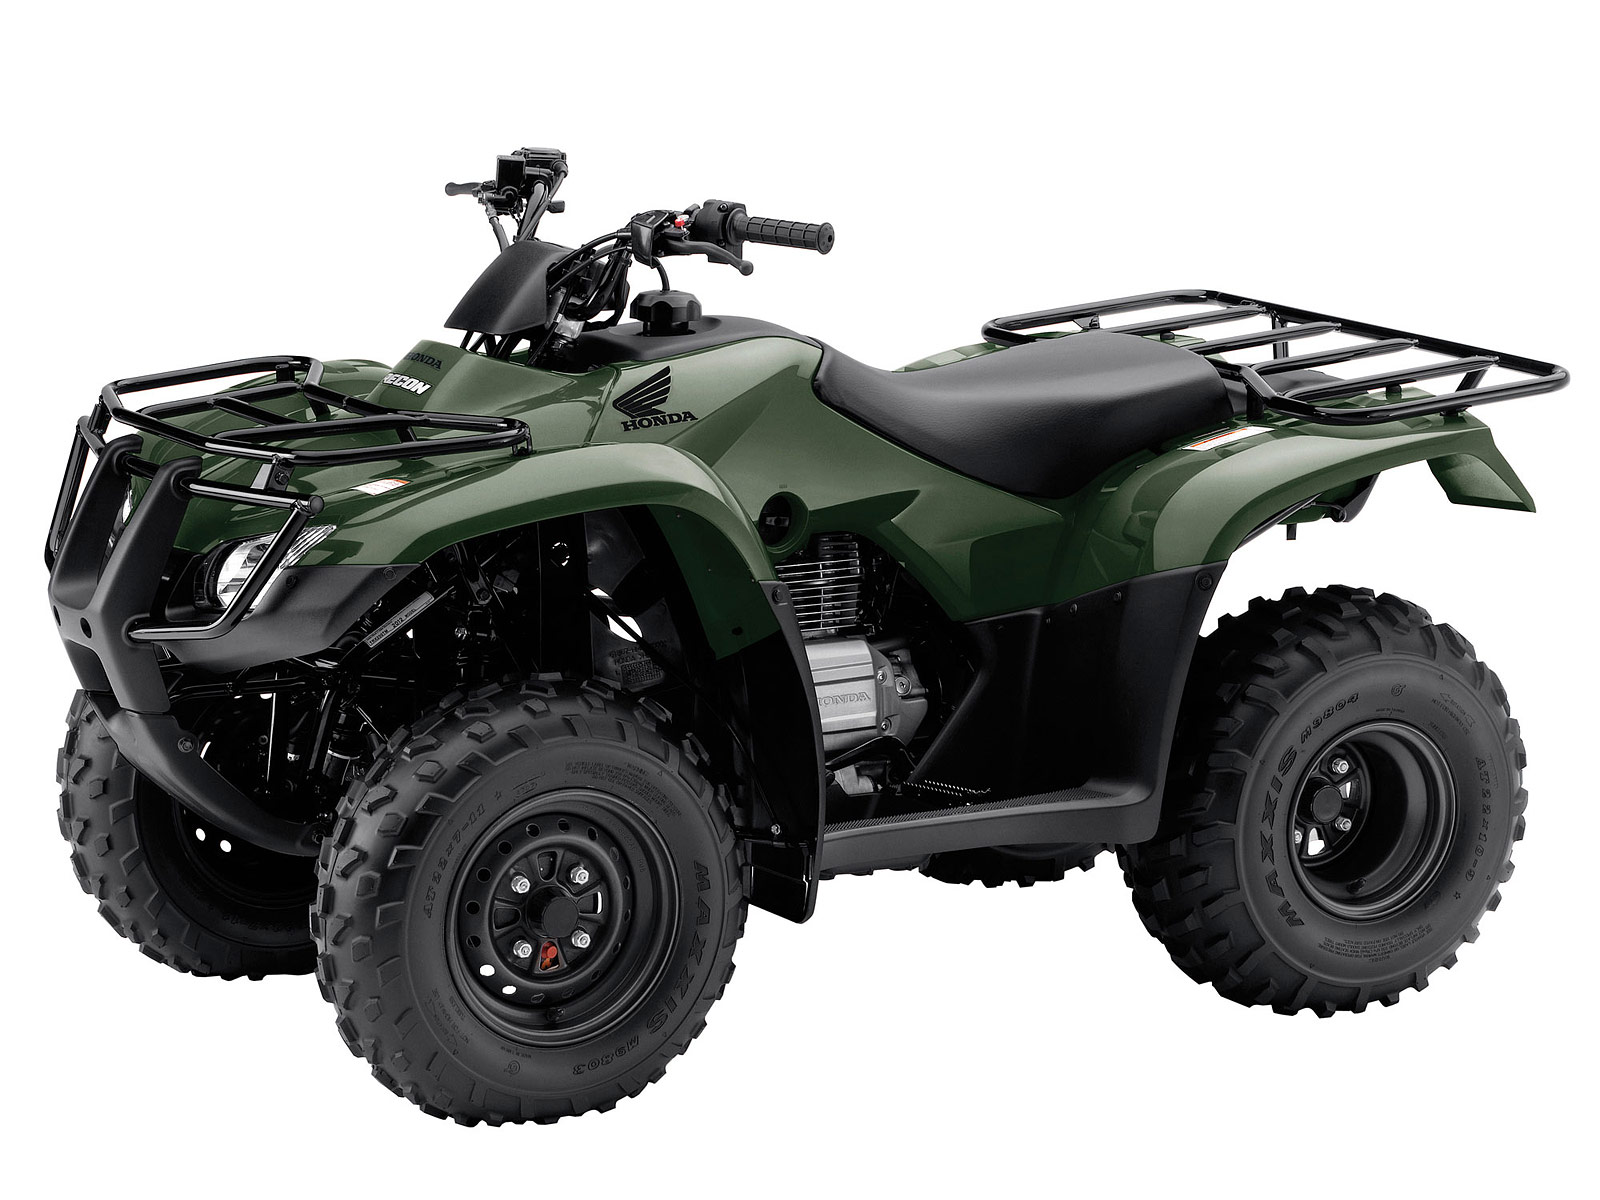 2013 Honda FourTrax Recon ES TRX250TE ATV pictures. 480x360 pixels